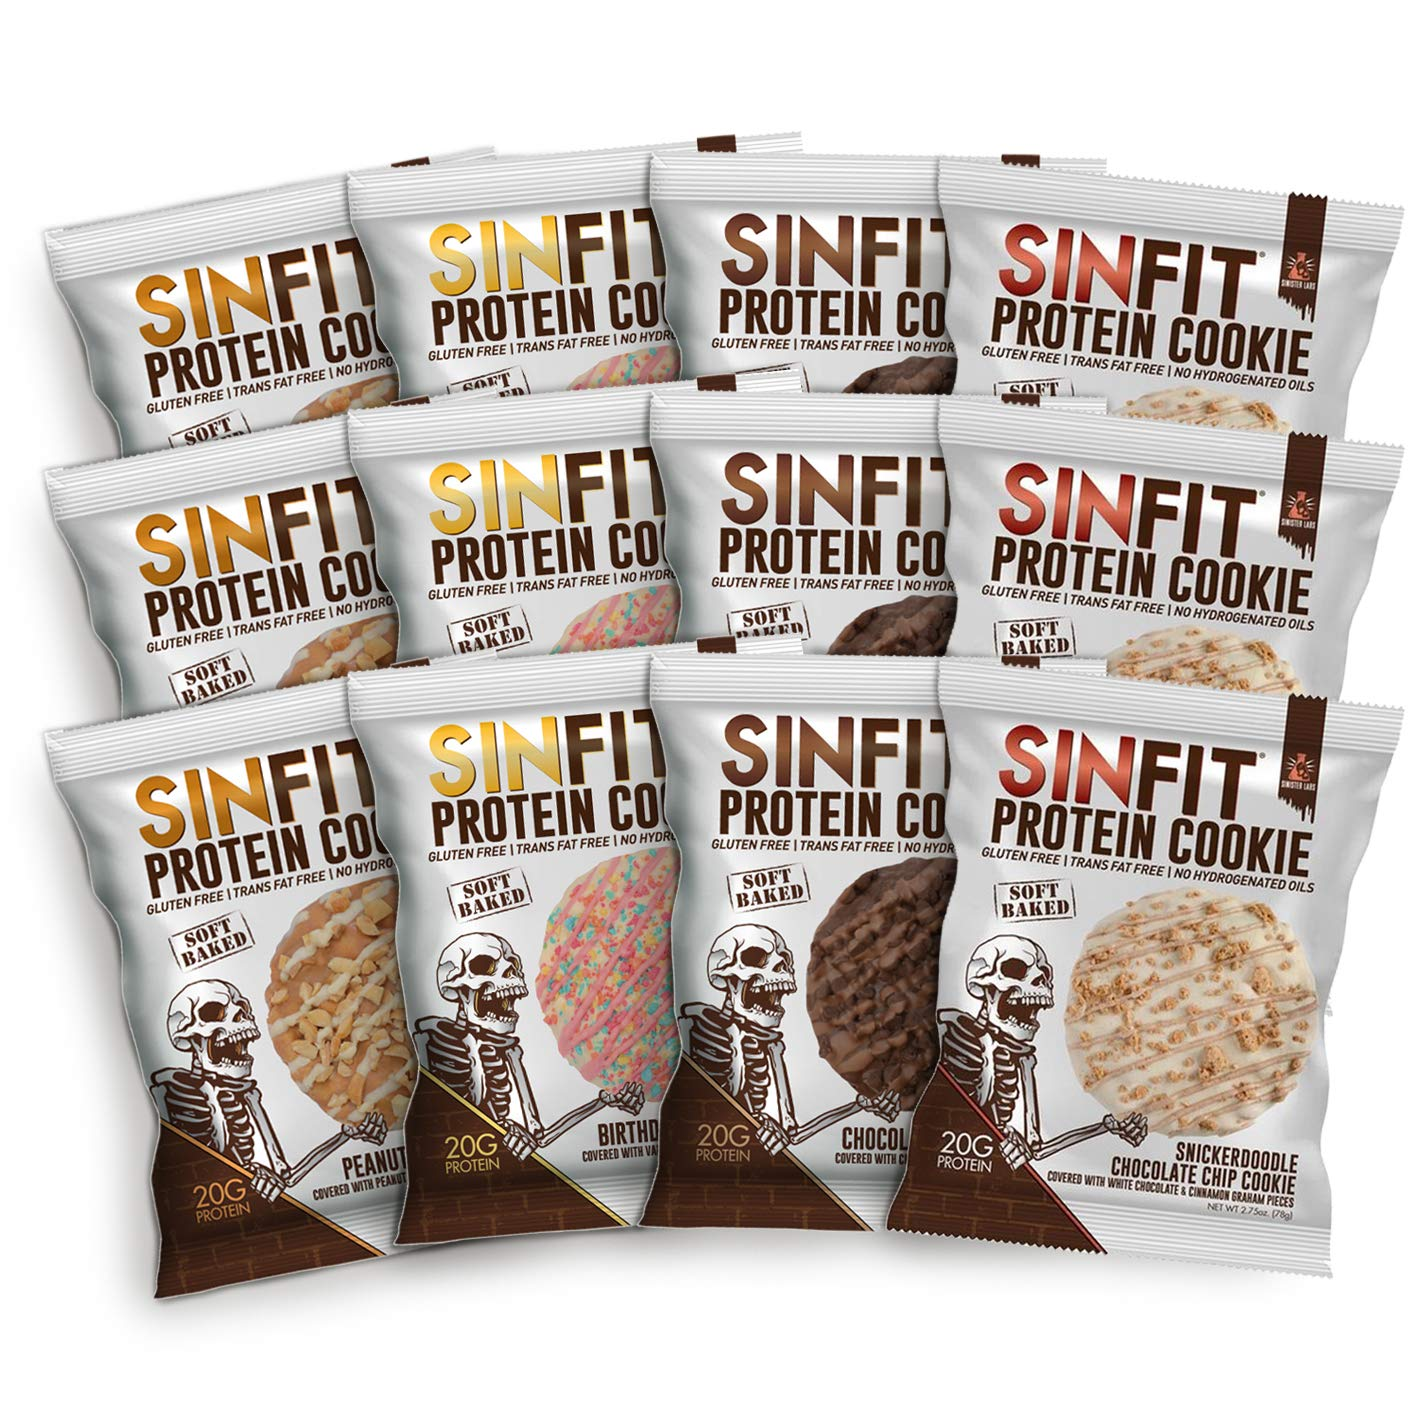 SINFIT Protein Cookies Variety Pack by Sinister Labs - All FOUR Original Flavors! Soft baked cookies, packed with 20g of protein and only 7g of sugar ...